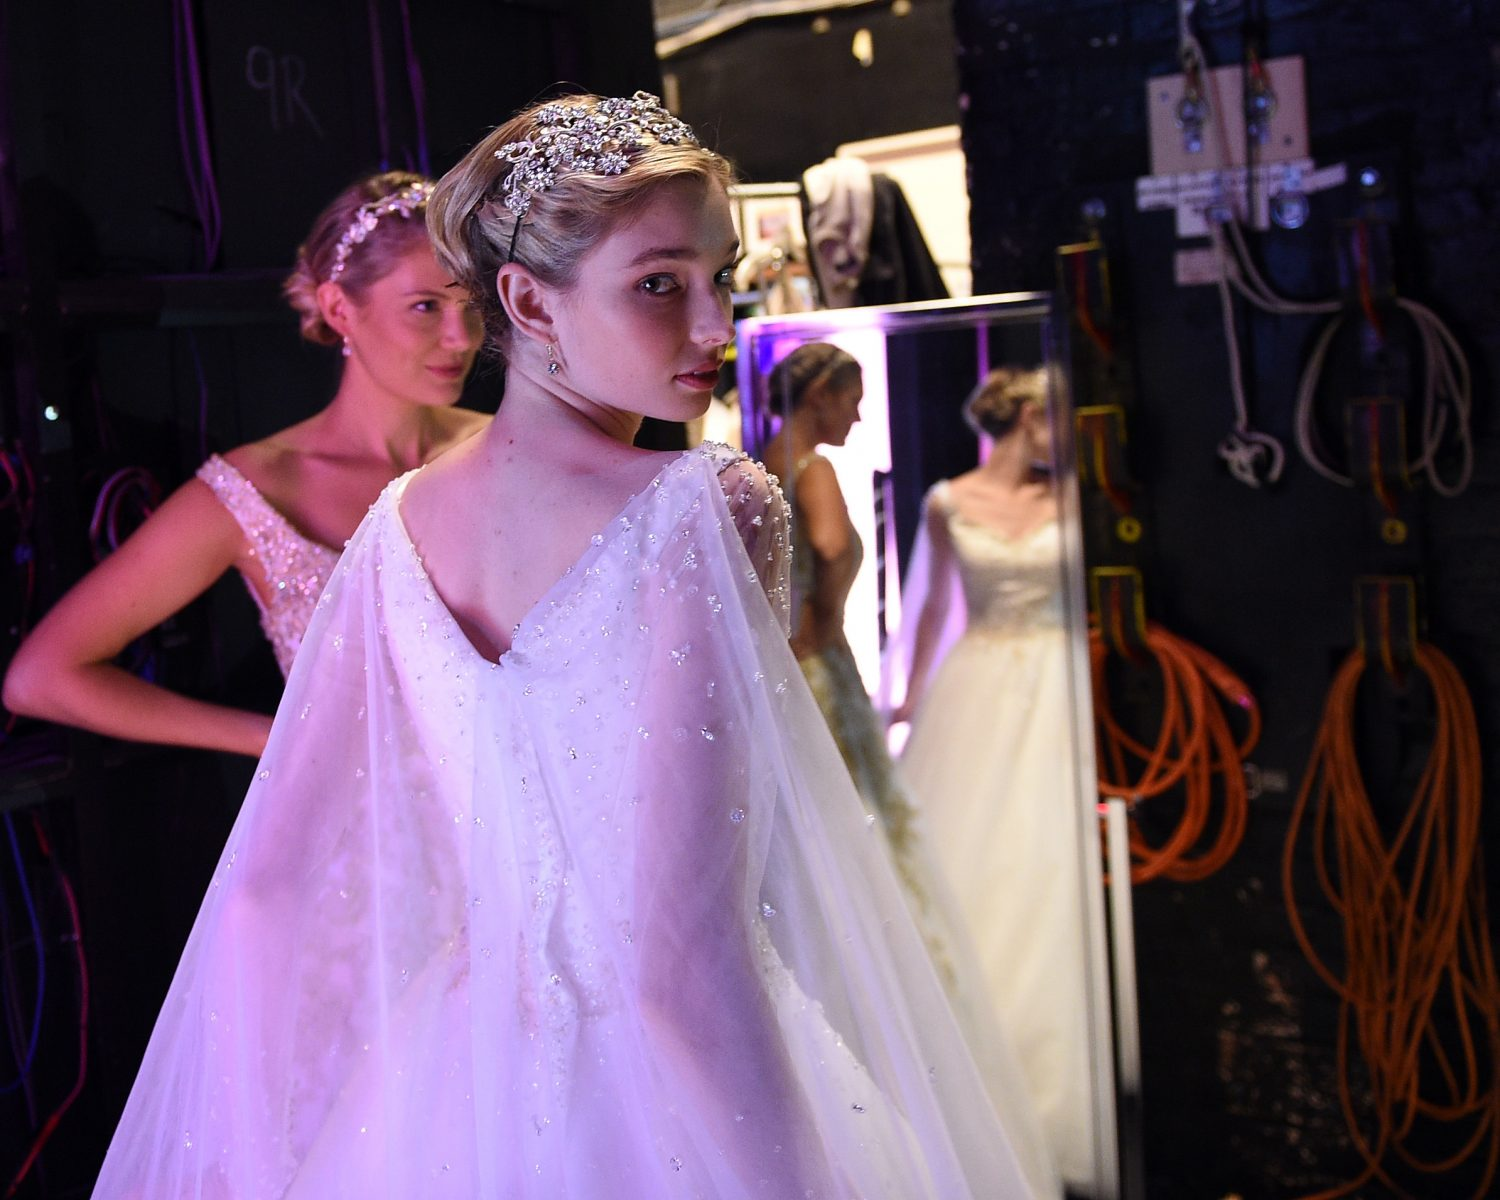 83a66a62a0b28 Alfred Angelo Closes Stores: What to Do If You're Affected